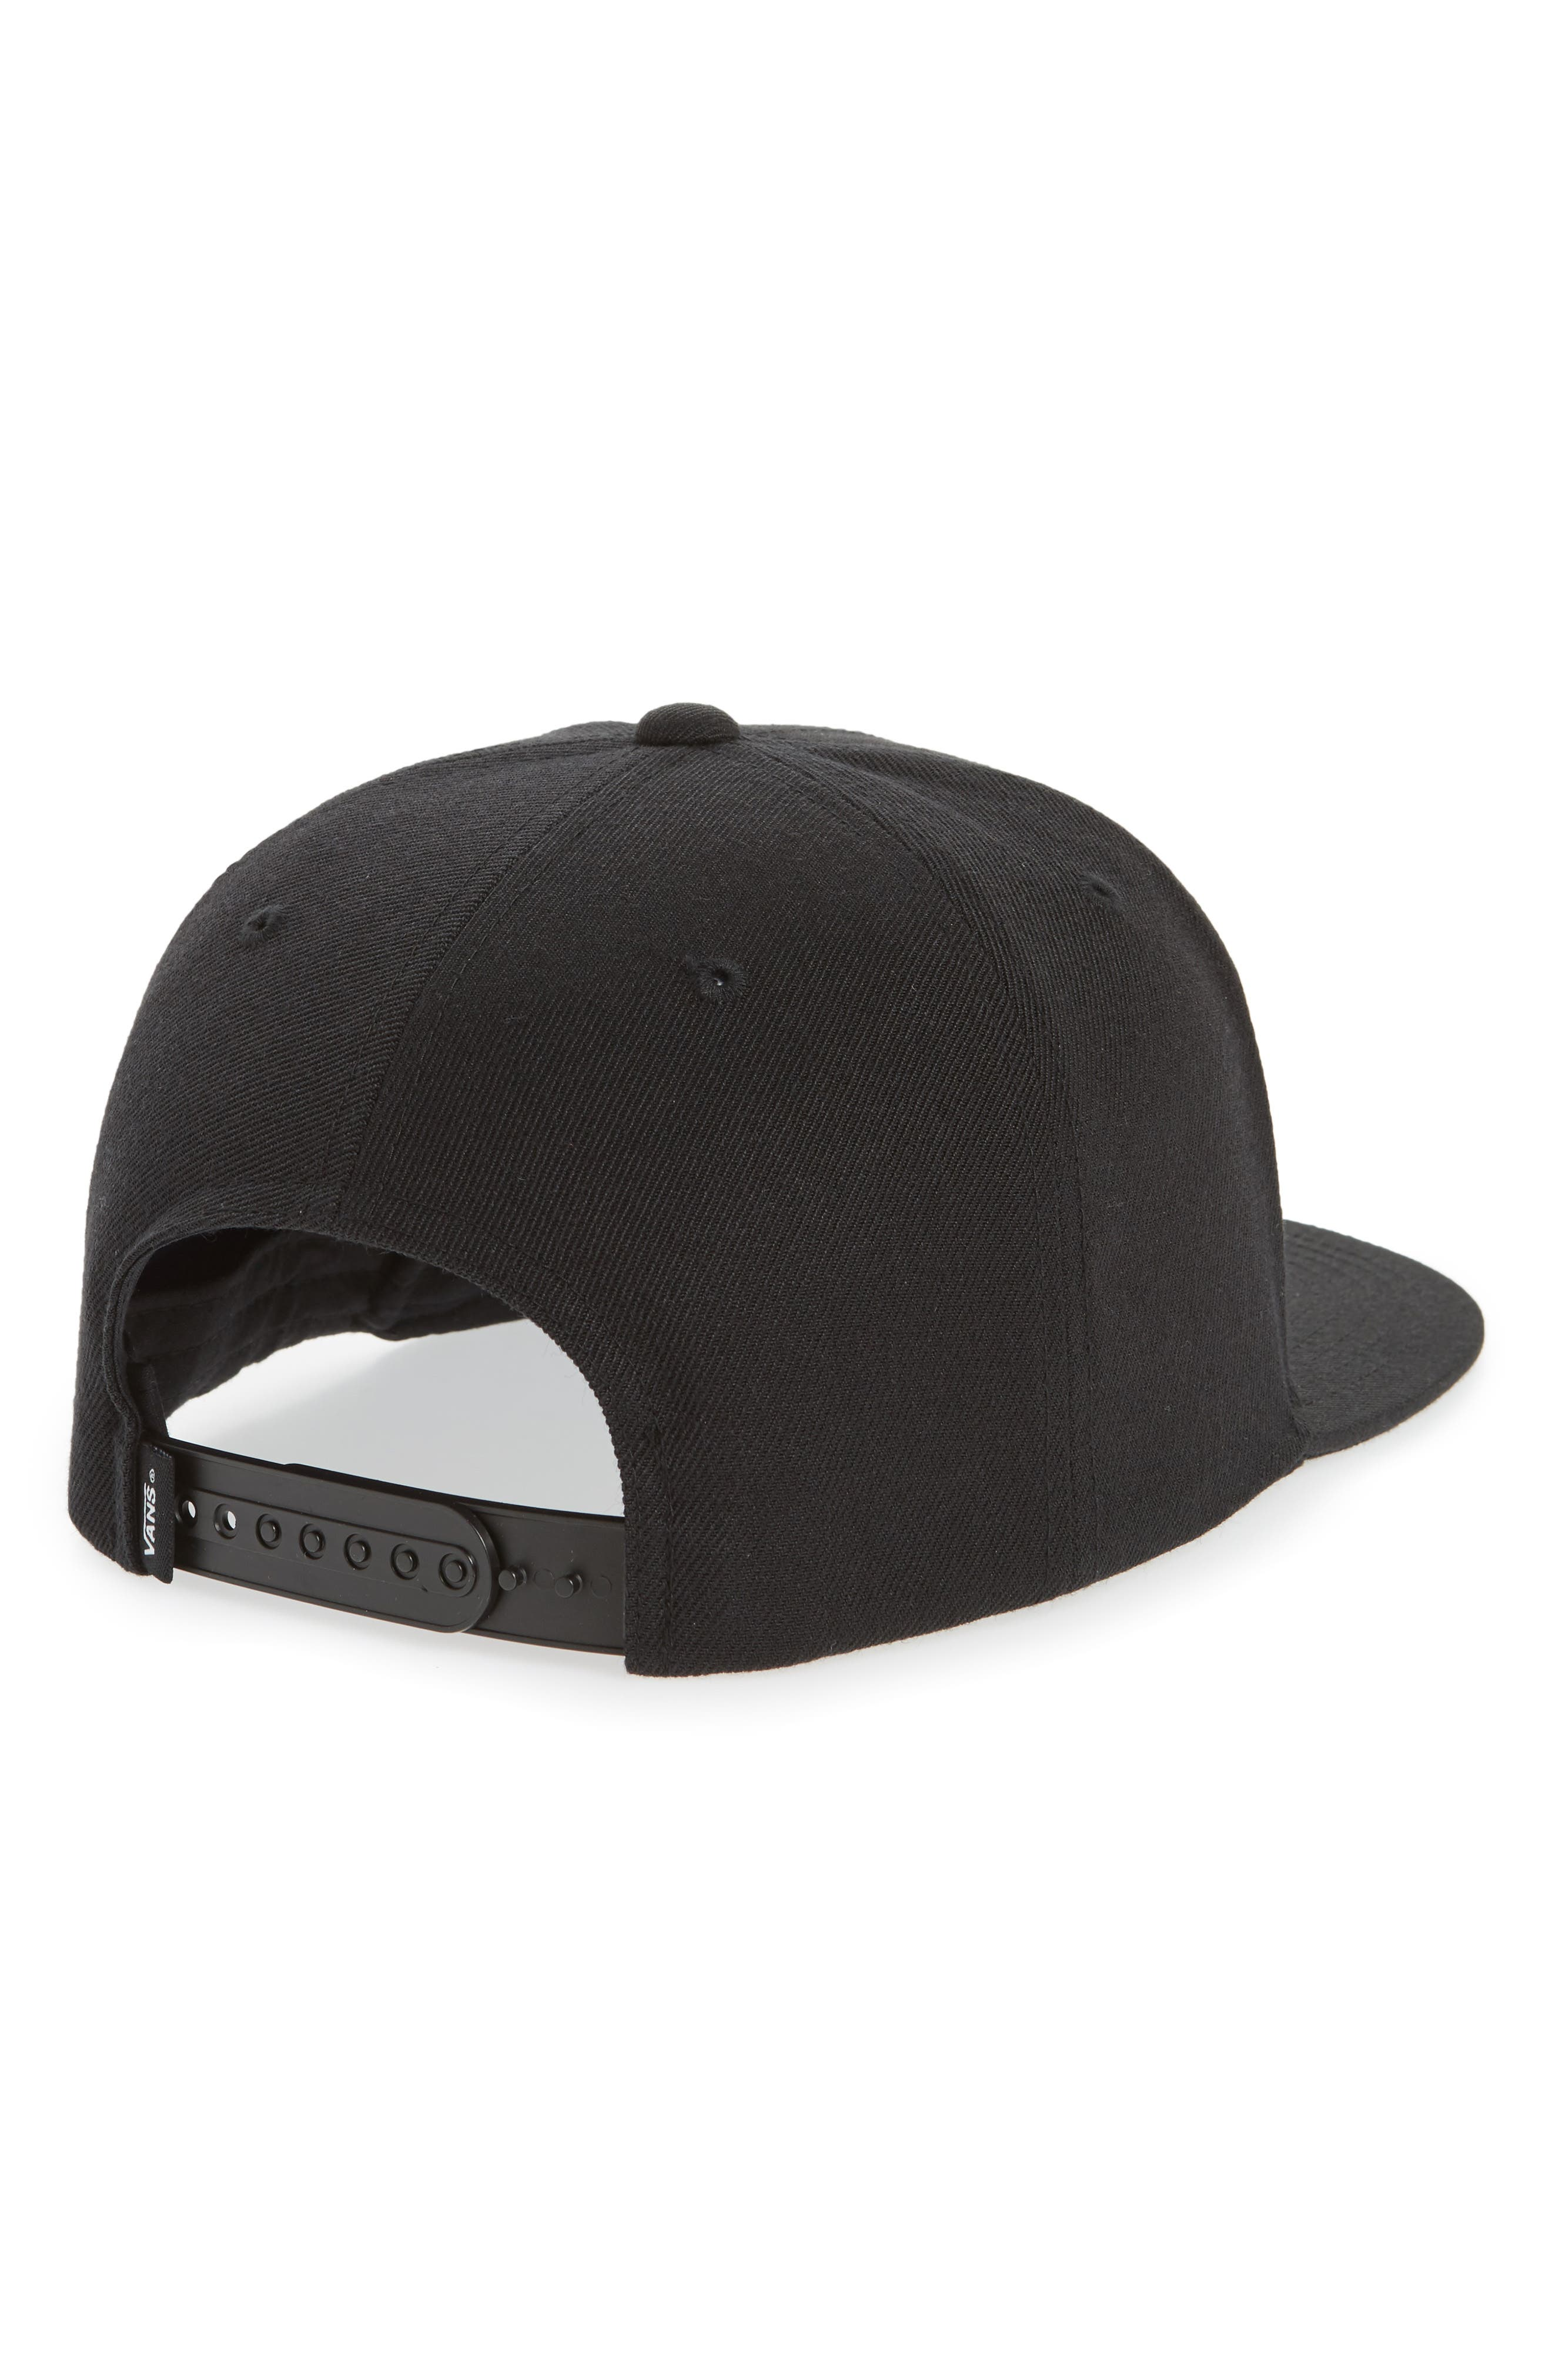 Drop V II Snapback Cap,                             Alternate thumbnail 2, color,                             BLACK/ WHITE